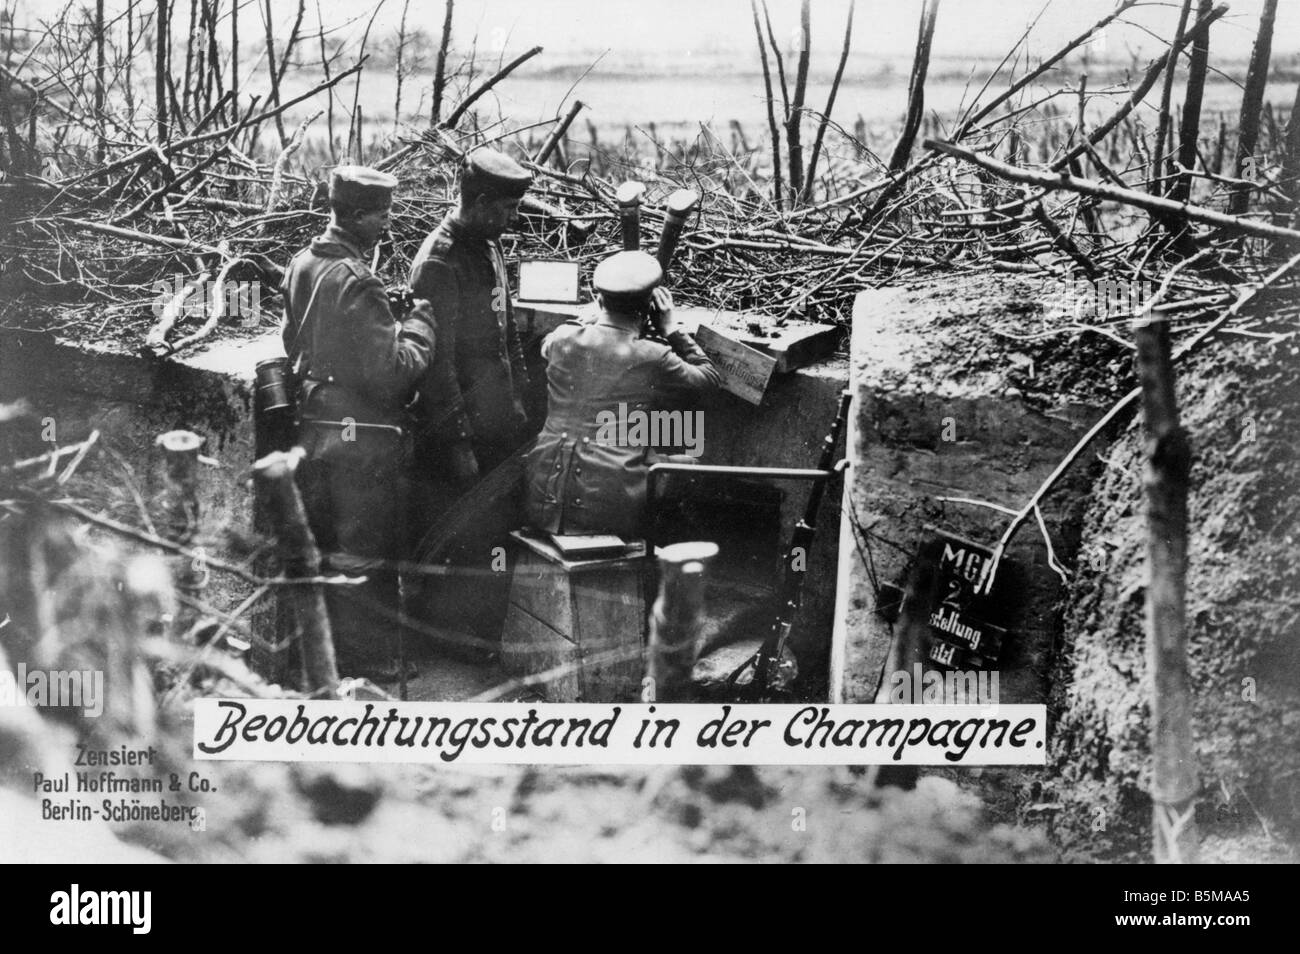 2 G55 W1 1915 16 Western Front German observation post History WWI Western Front Observation post of German troops - Stock Image